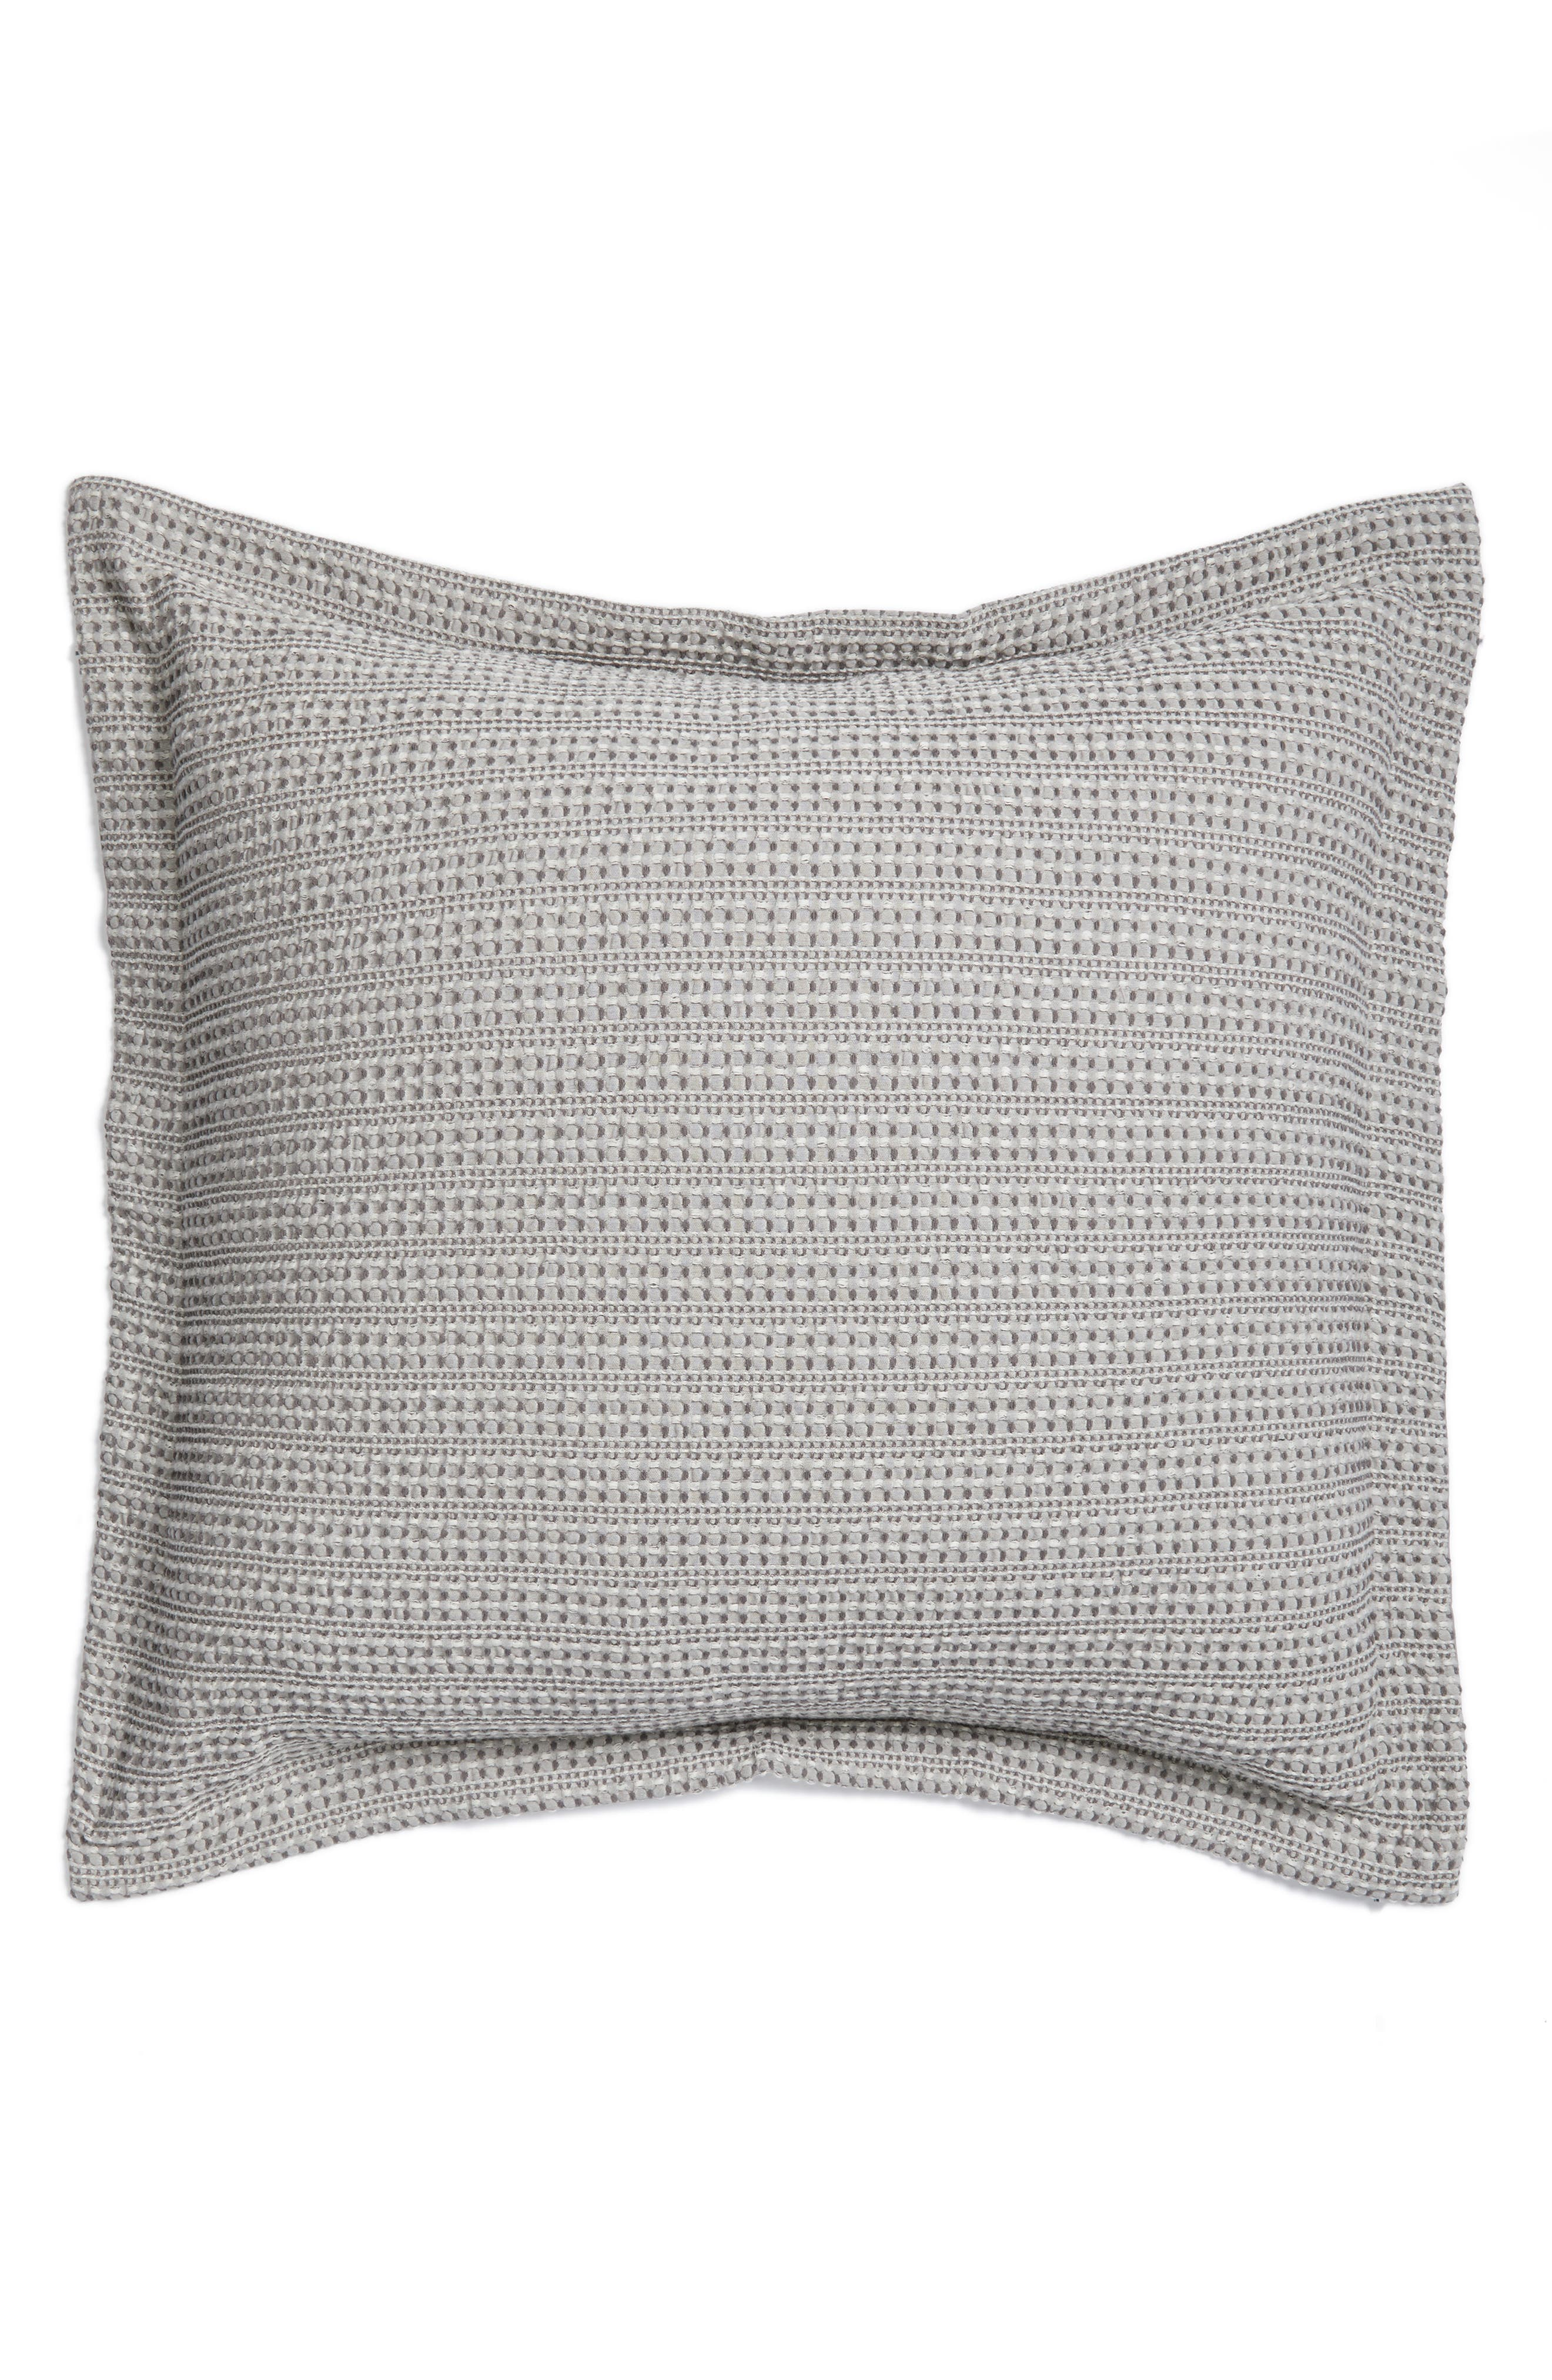 Stitched Accent Pillow,                         Main,                         color, Grey